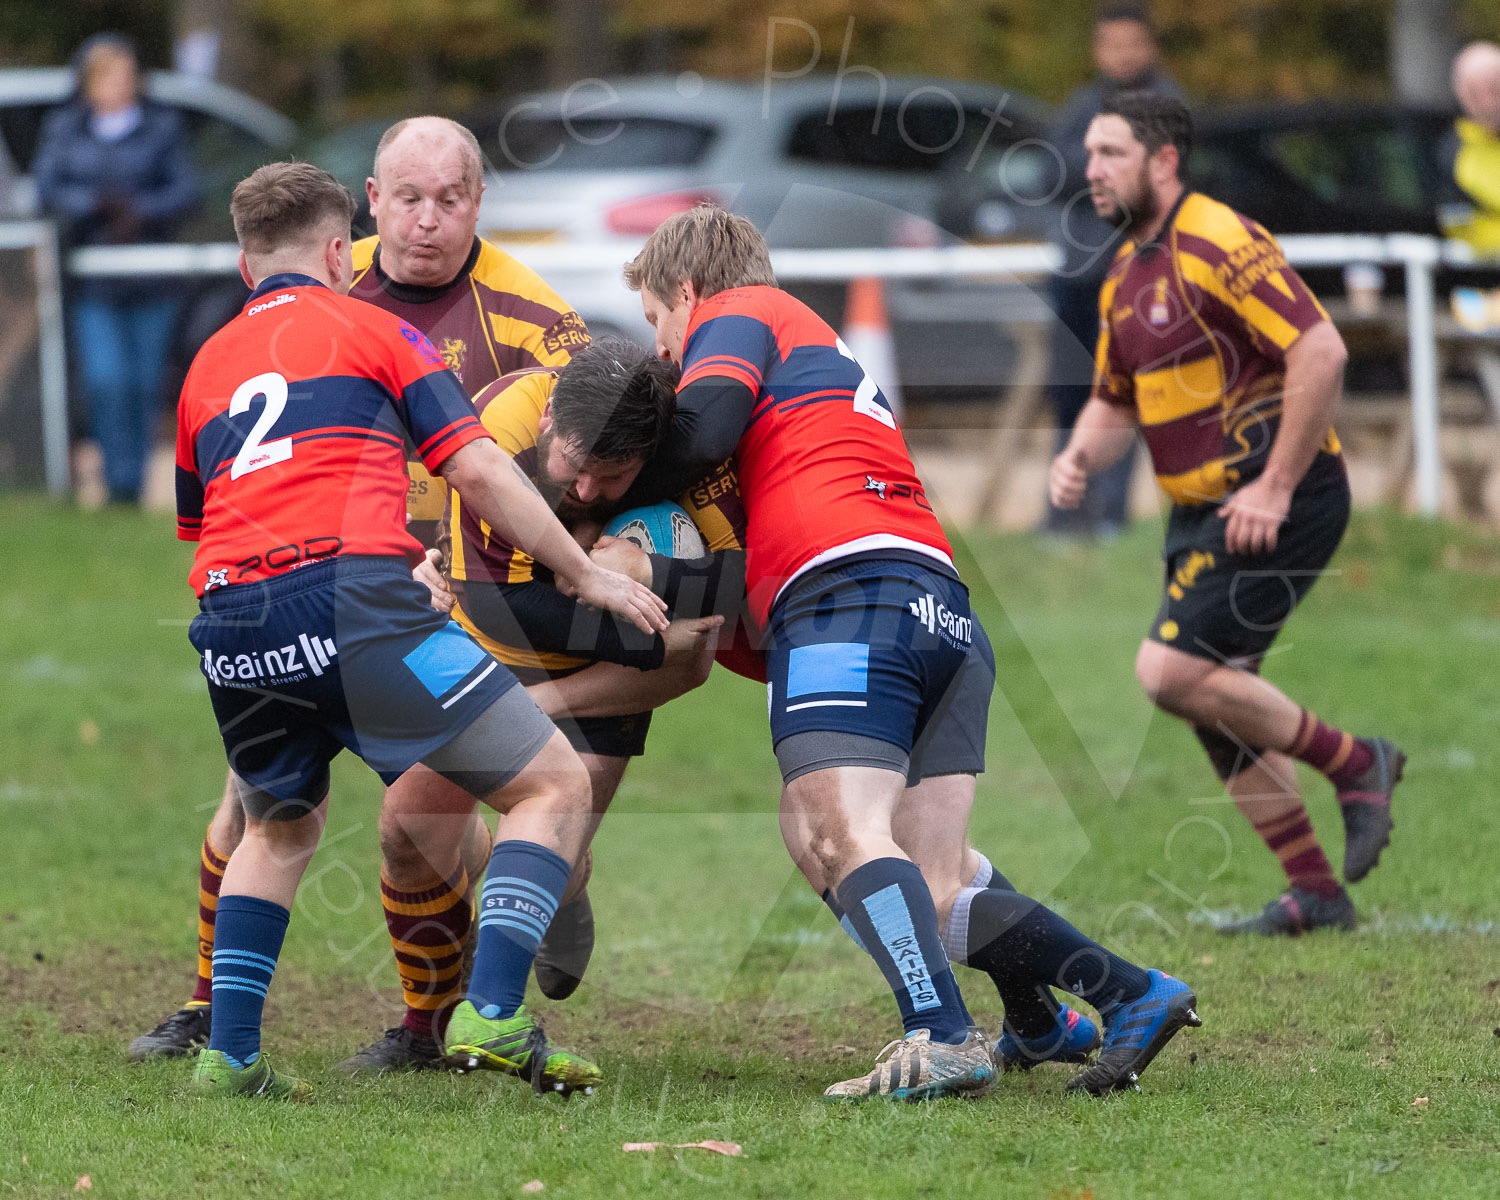 20181027 Amp Extras vs St Neots 2nd XV #2427